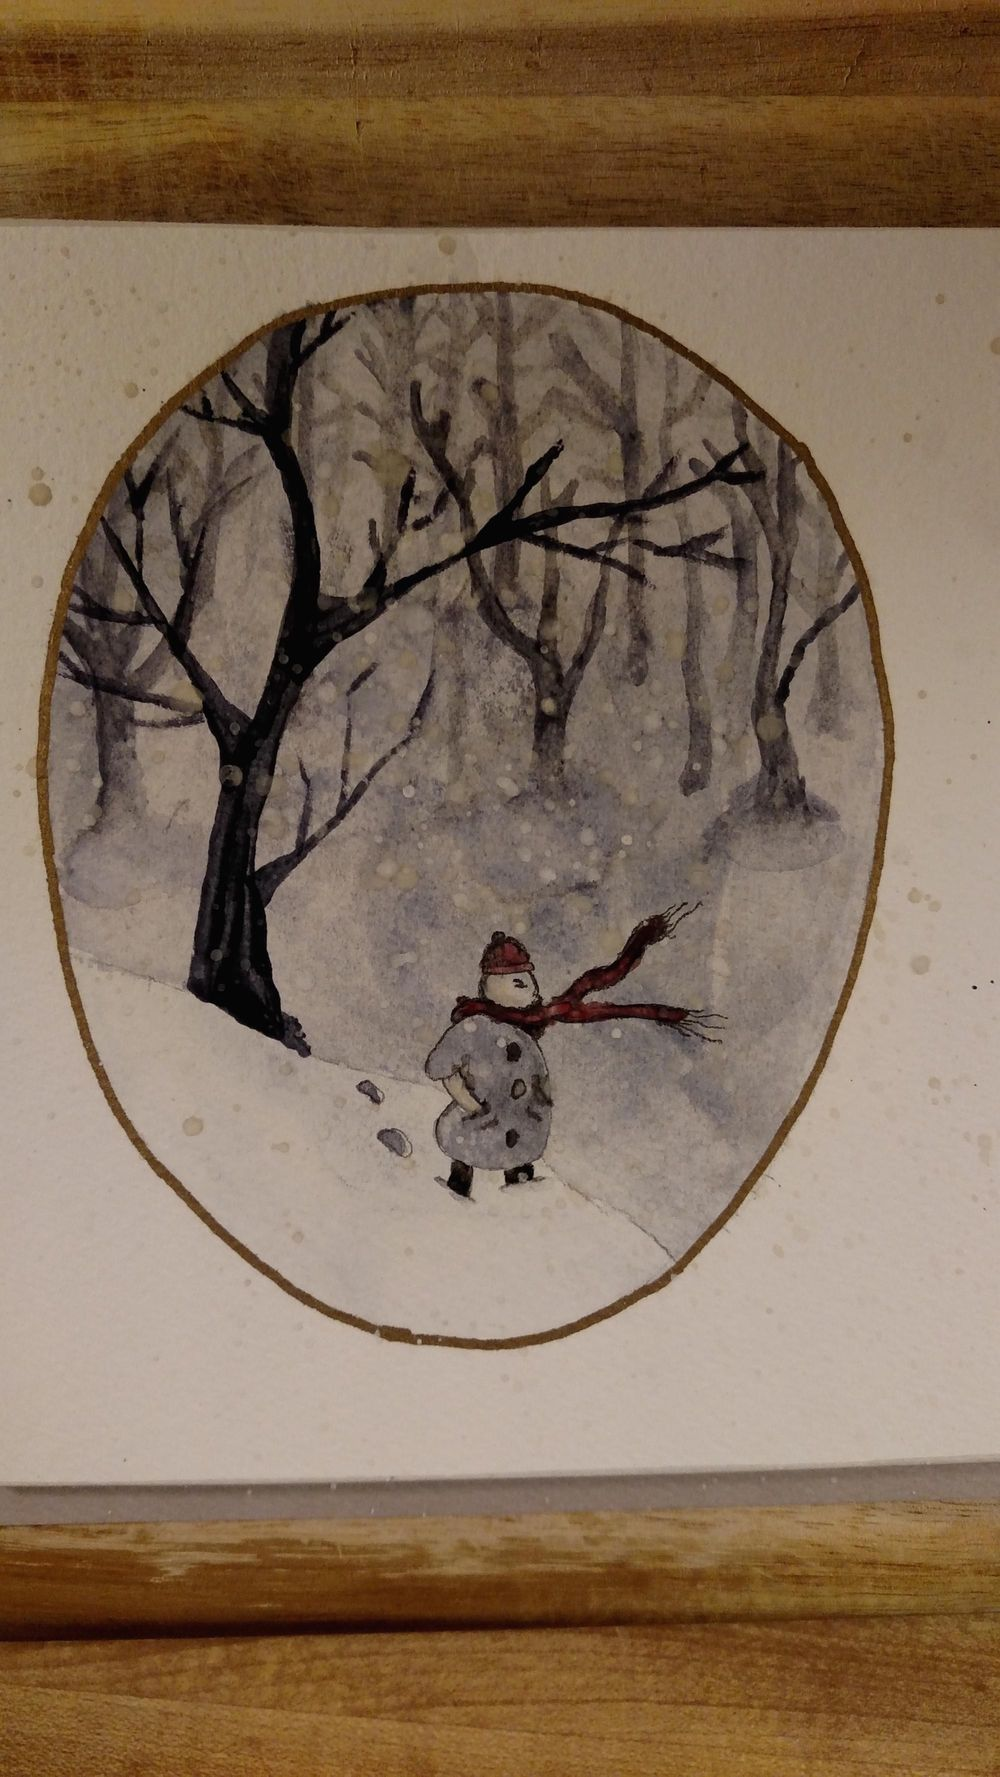 Winter - image 1 - student project